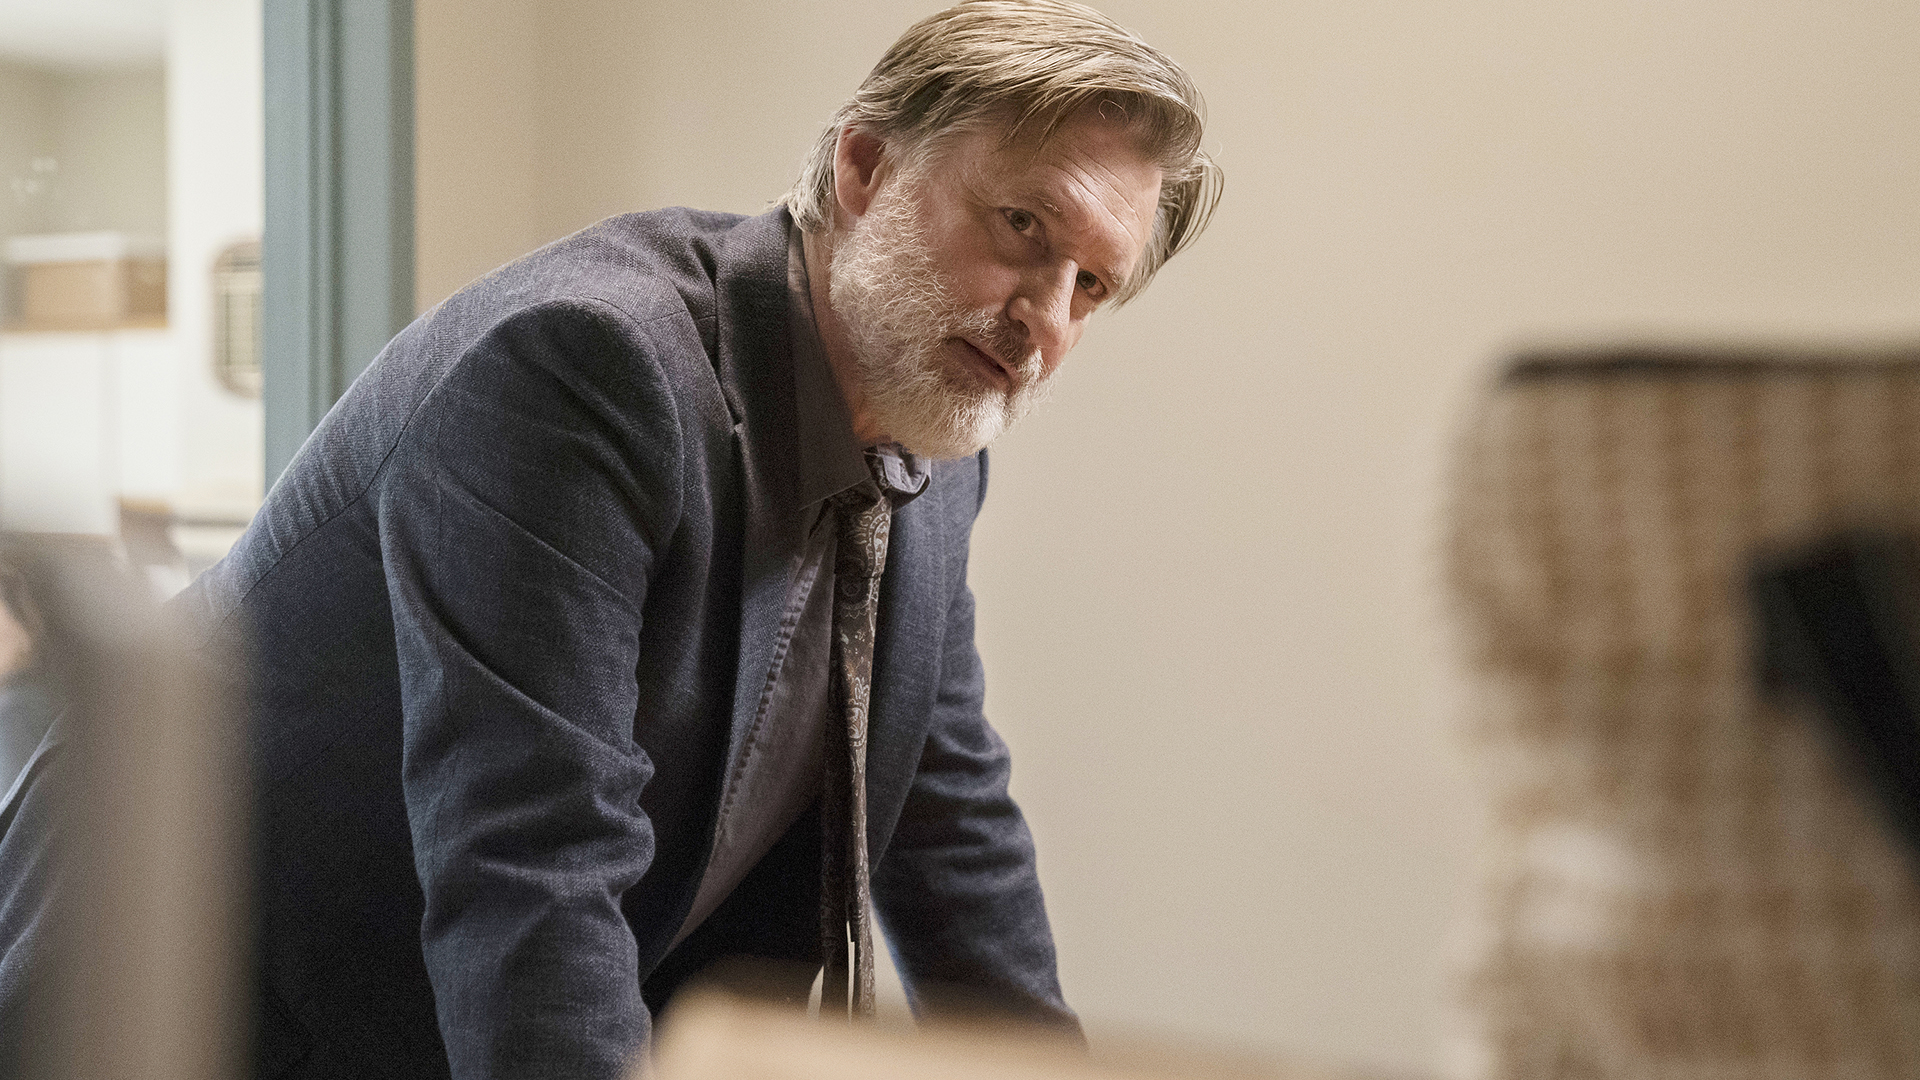 cena da primeira temporada de The Sinner com Bill Pullman